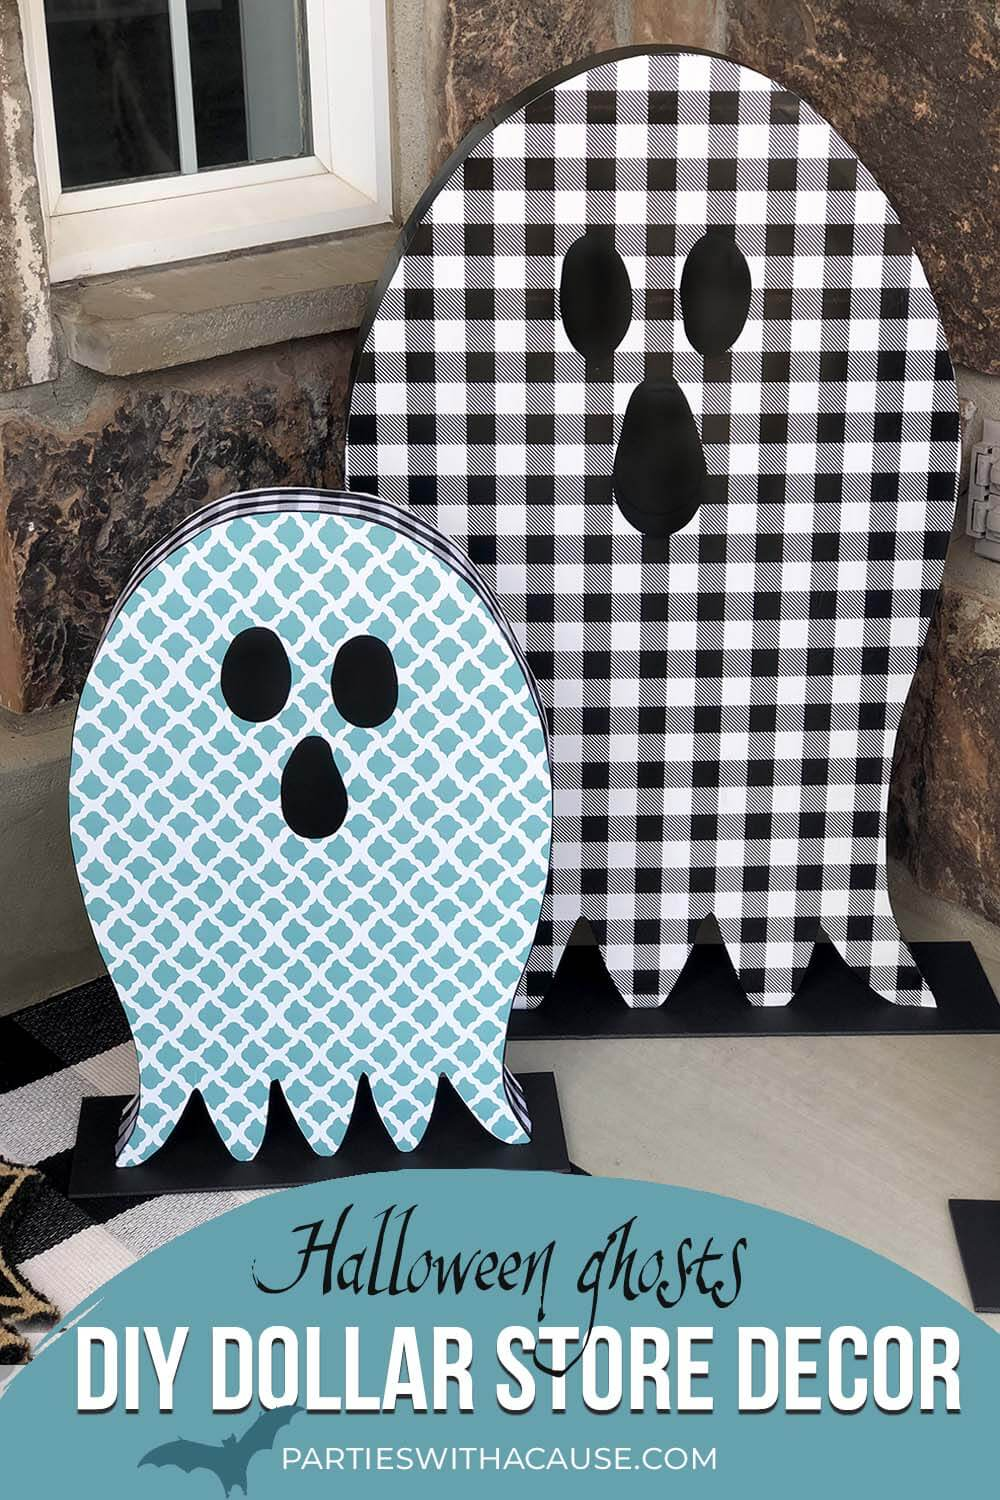 DIY Dollar Store Decor Halloween ghosts by Salt Lake Party Stylist